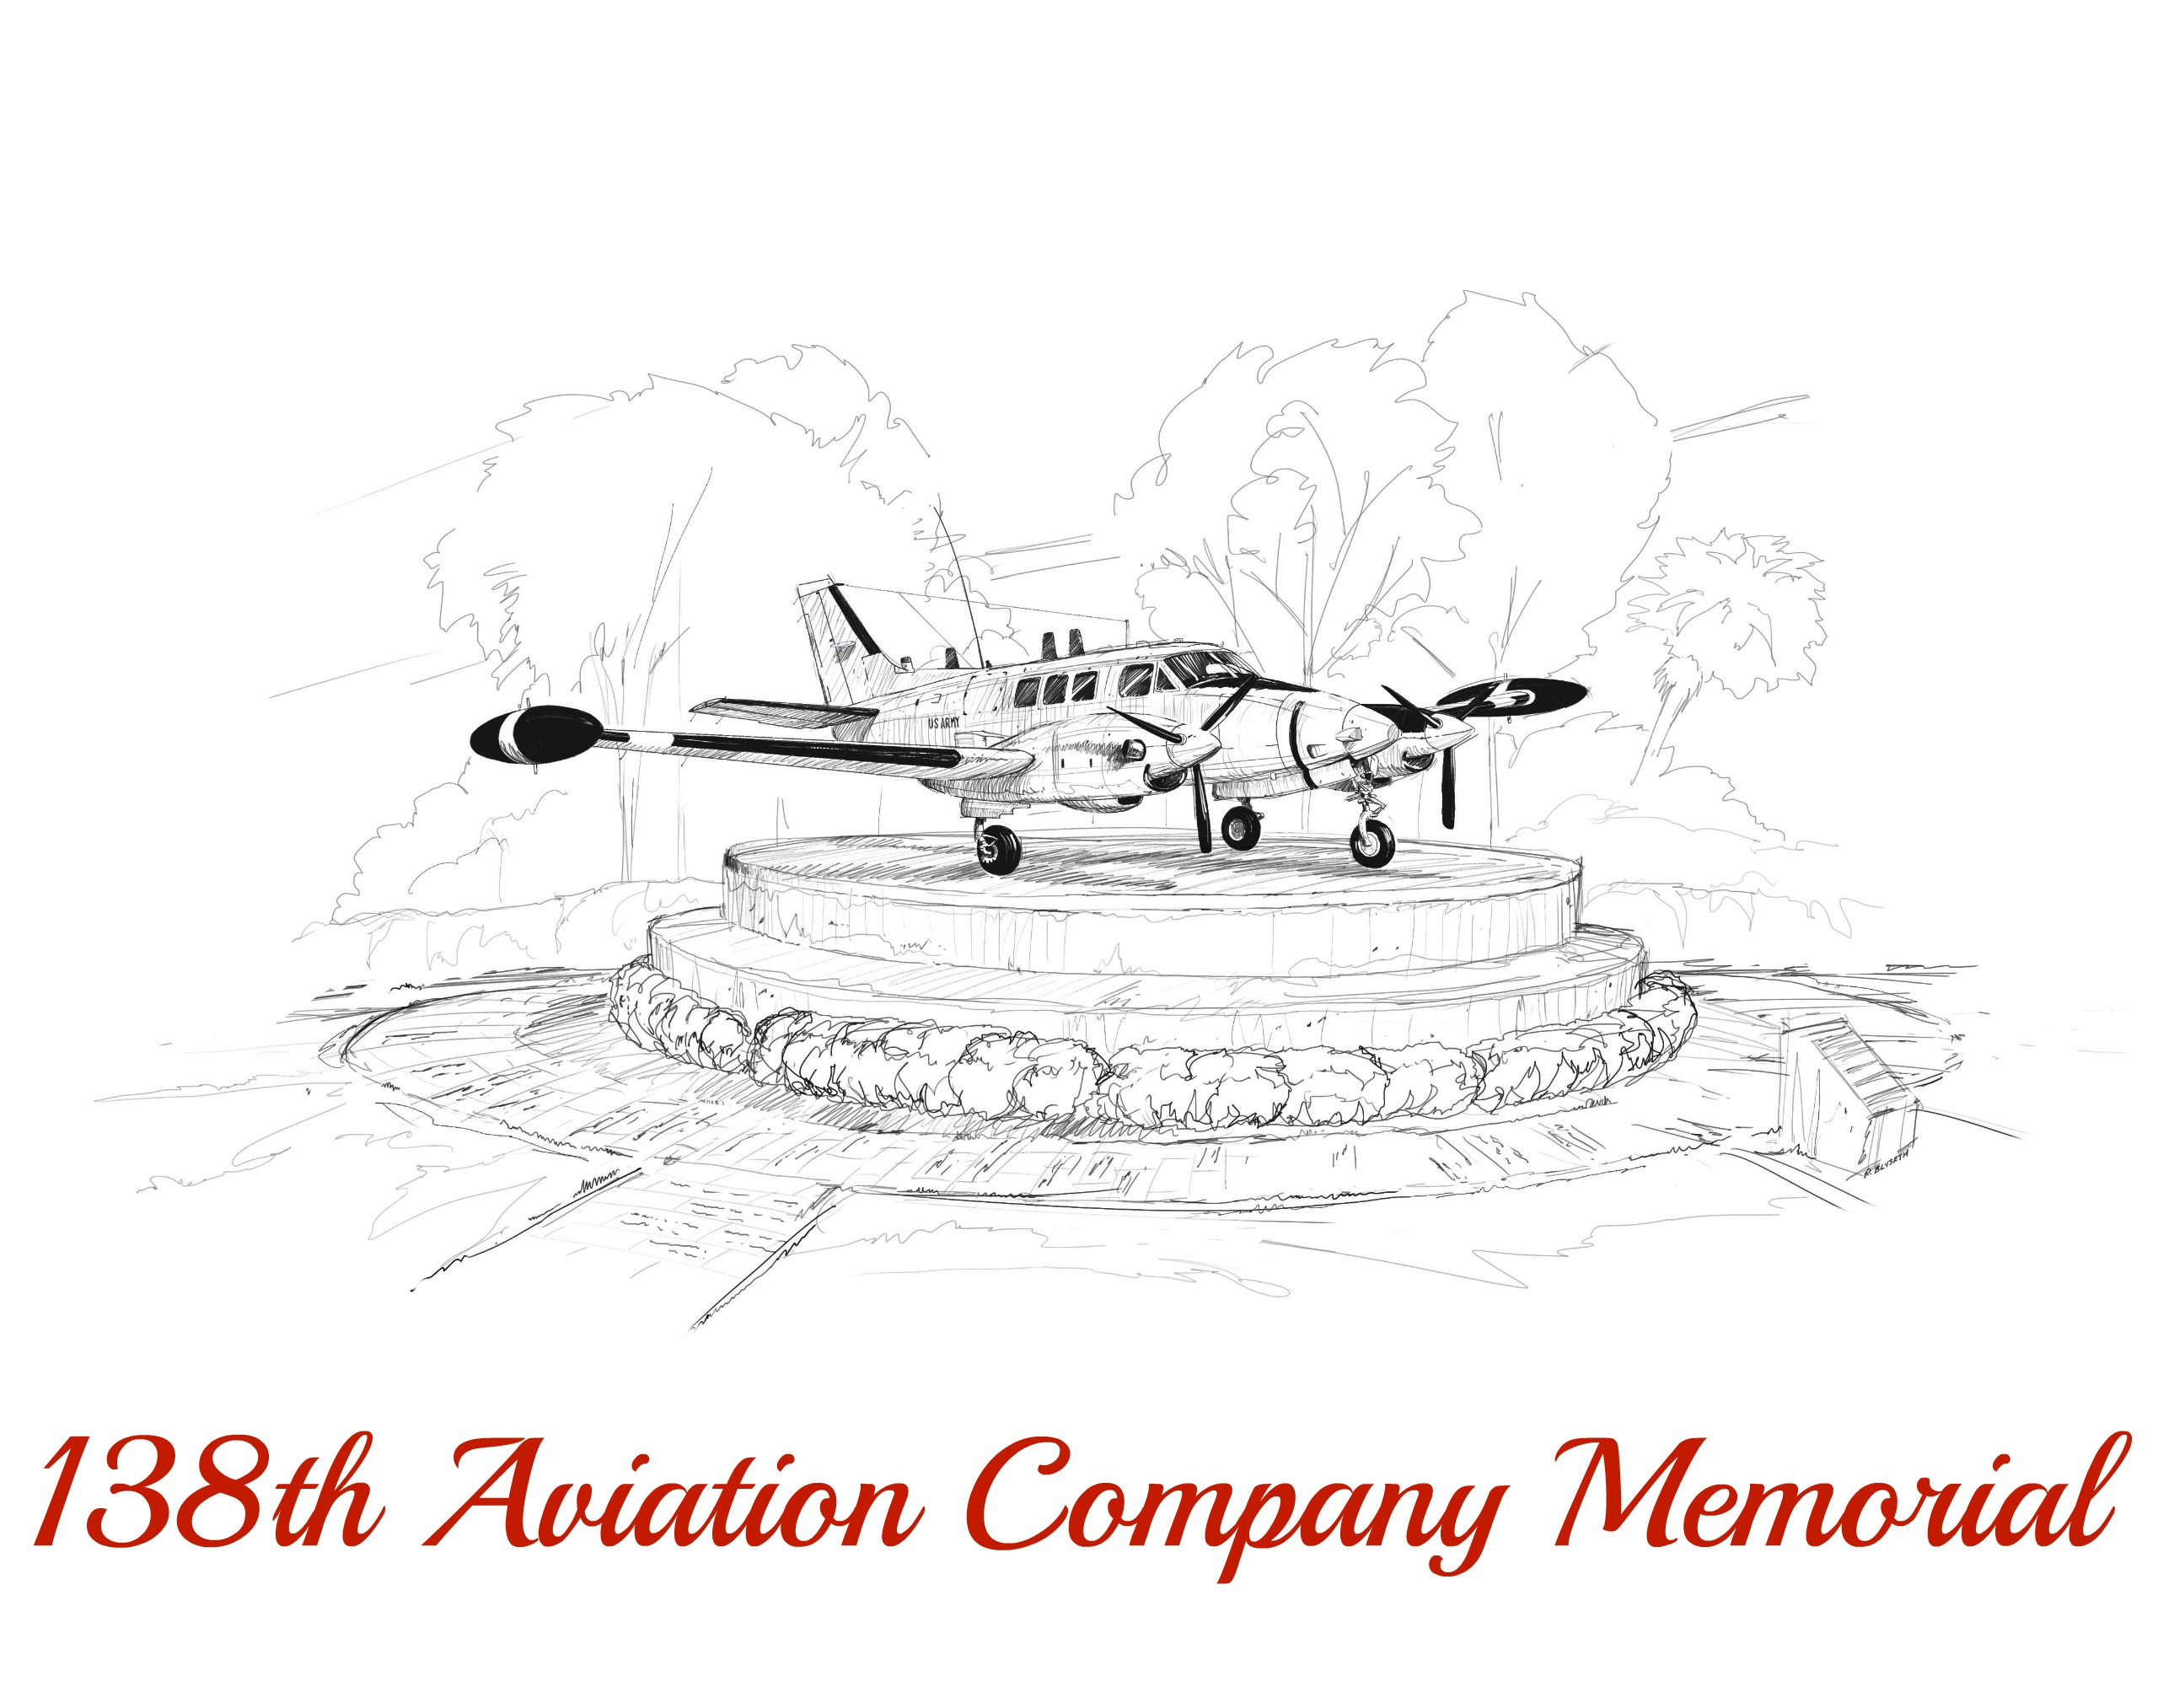 This is the how the memorial should look like once completed. The current plan is to build the memorial next to the B-52  and F-4 on display in a park at the Orlando International Airport.